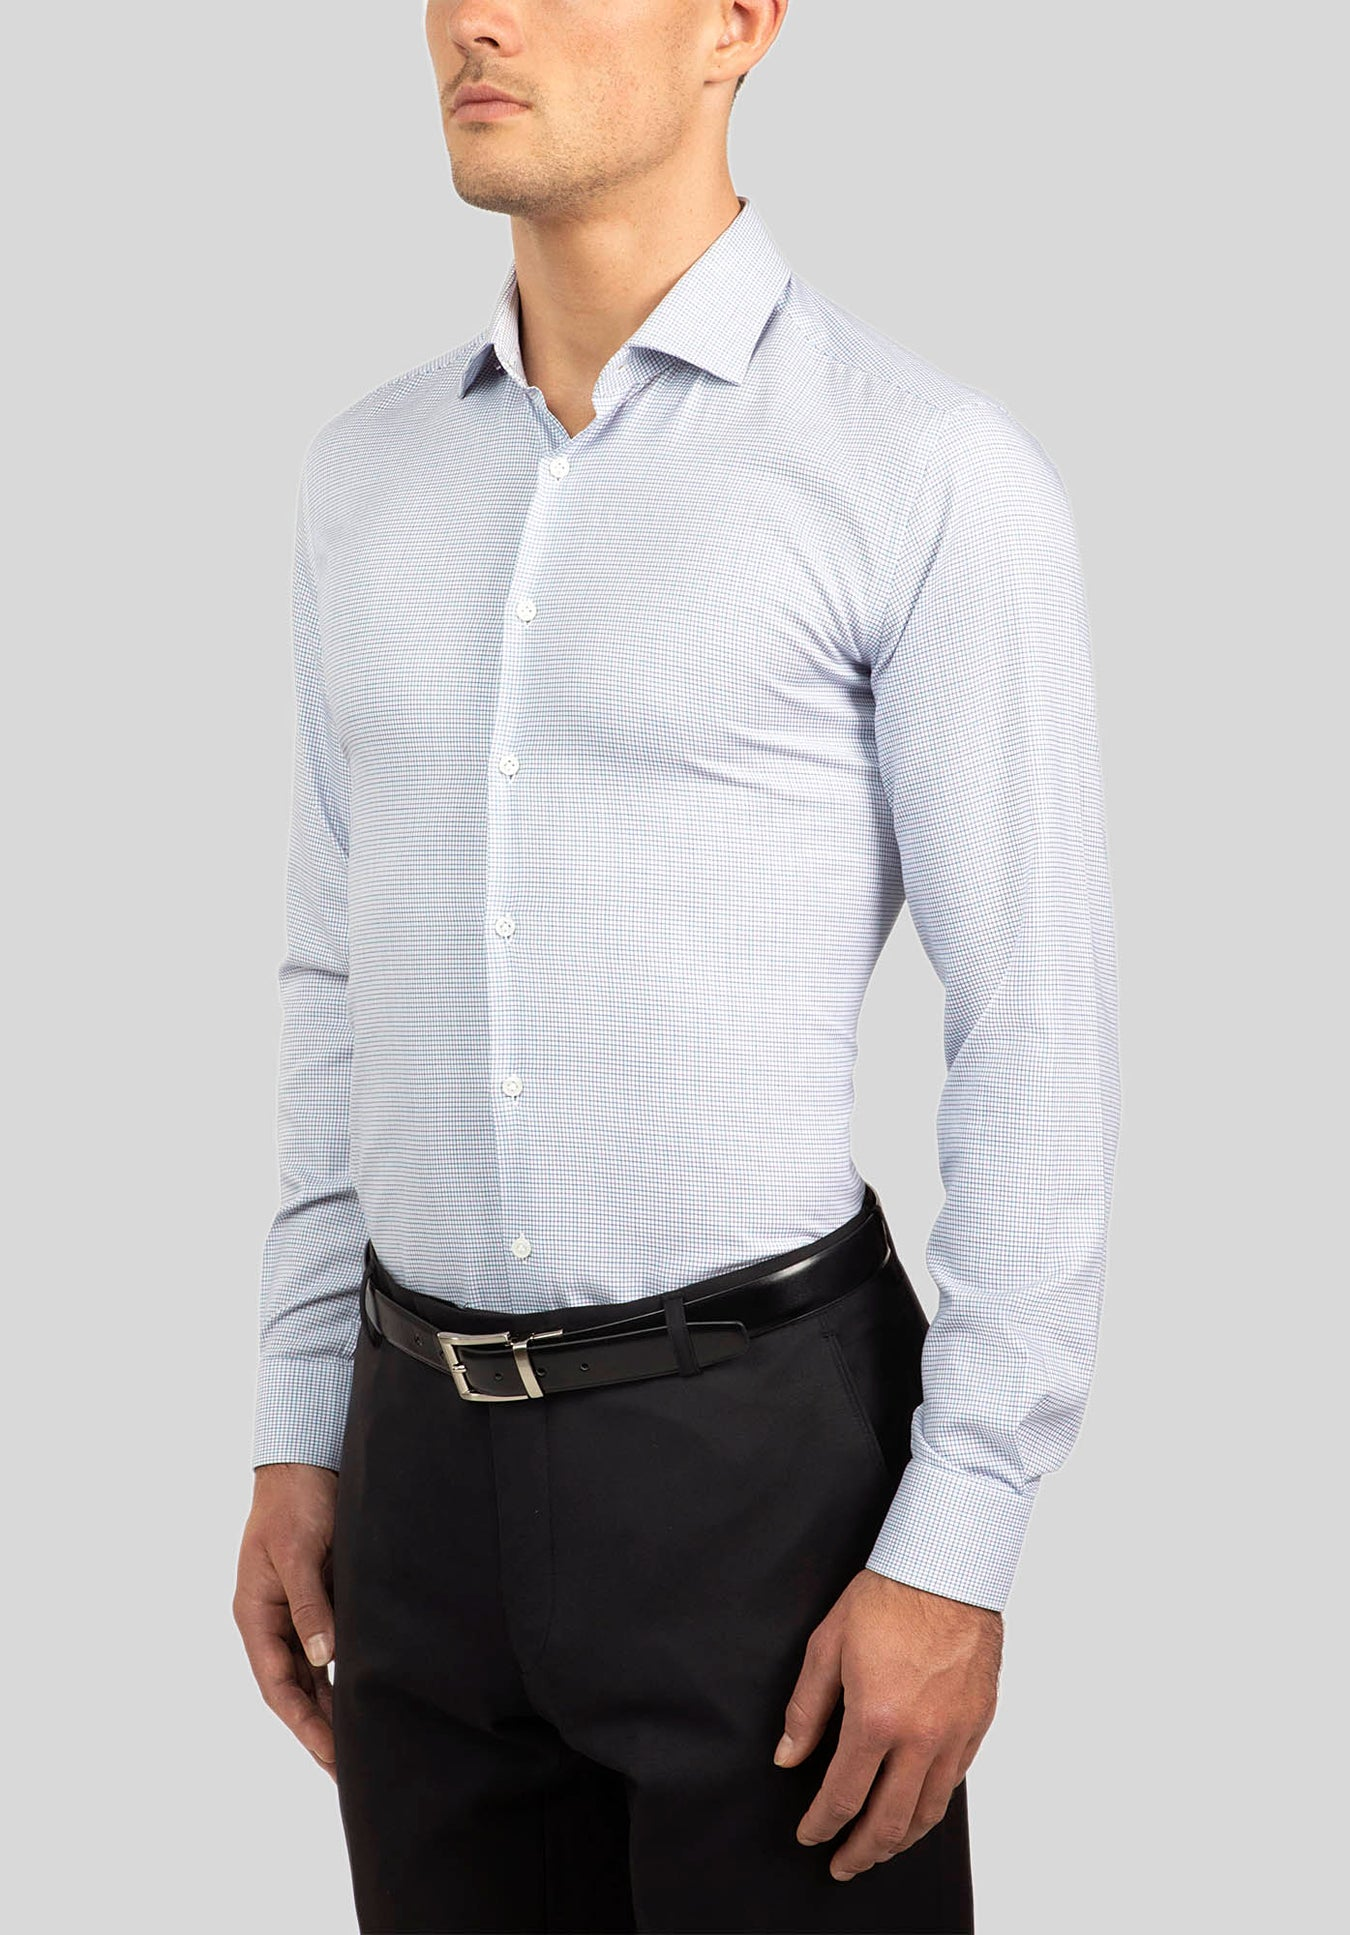 MOTION SHIRT FGJ601 - Blue